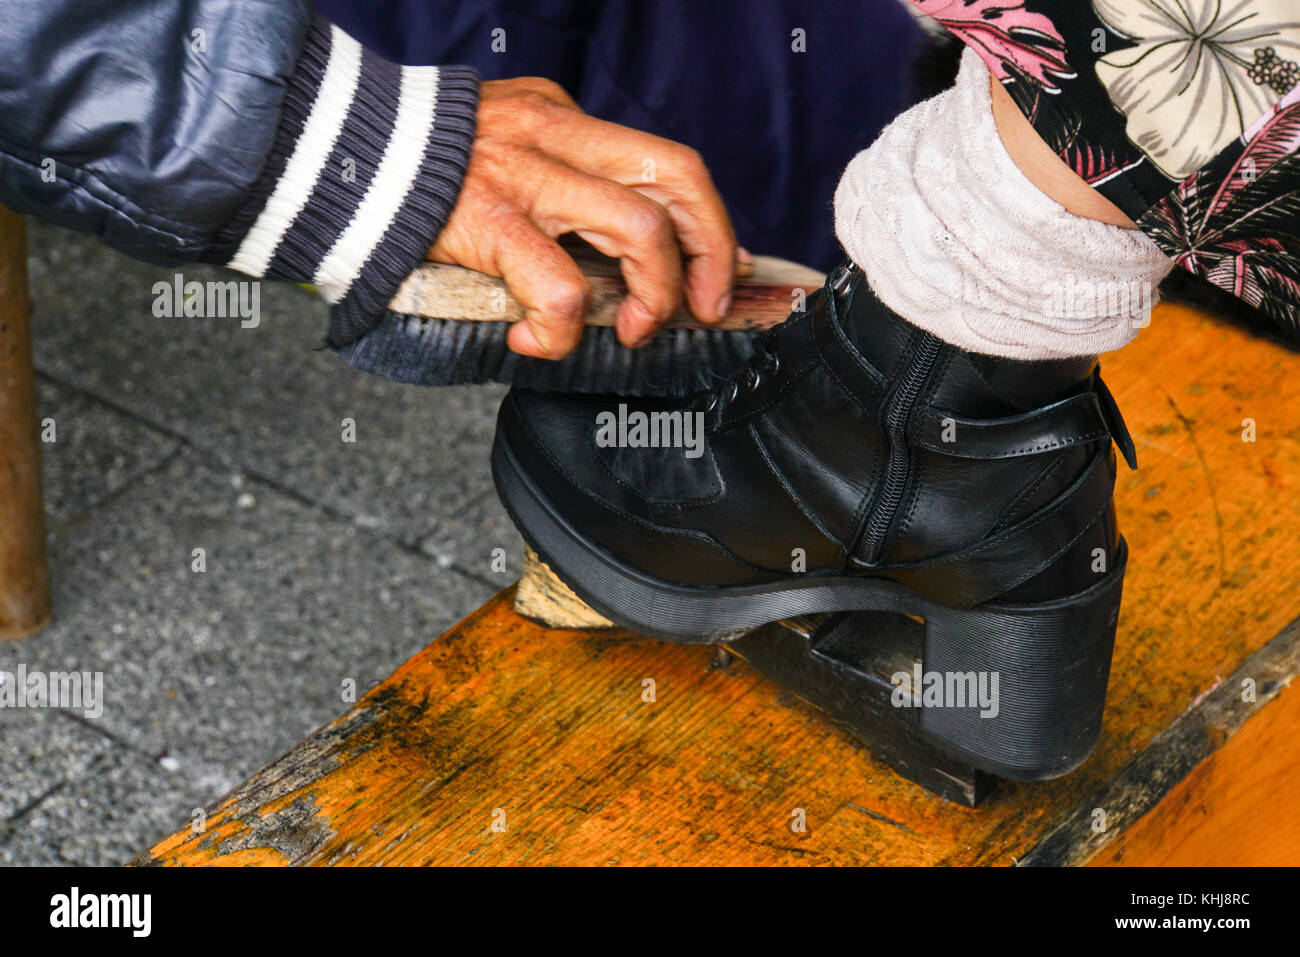 Client is having his shoe polished at a Shoeshine stand. Close-up of the hand, brush and boot, Photographed in Plovdiv, - Stock Image